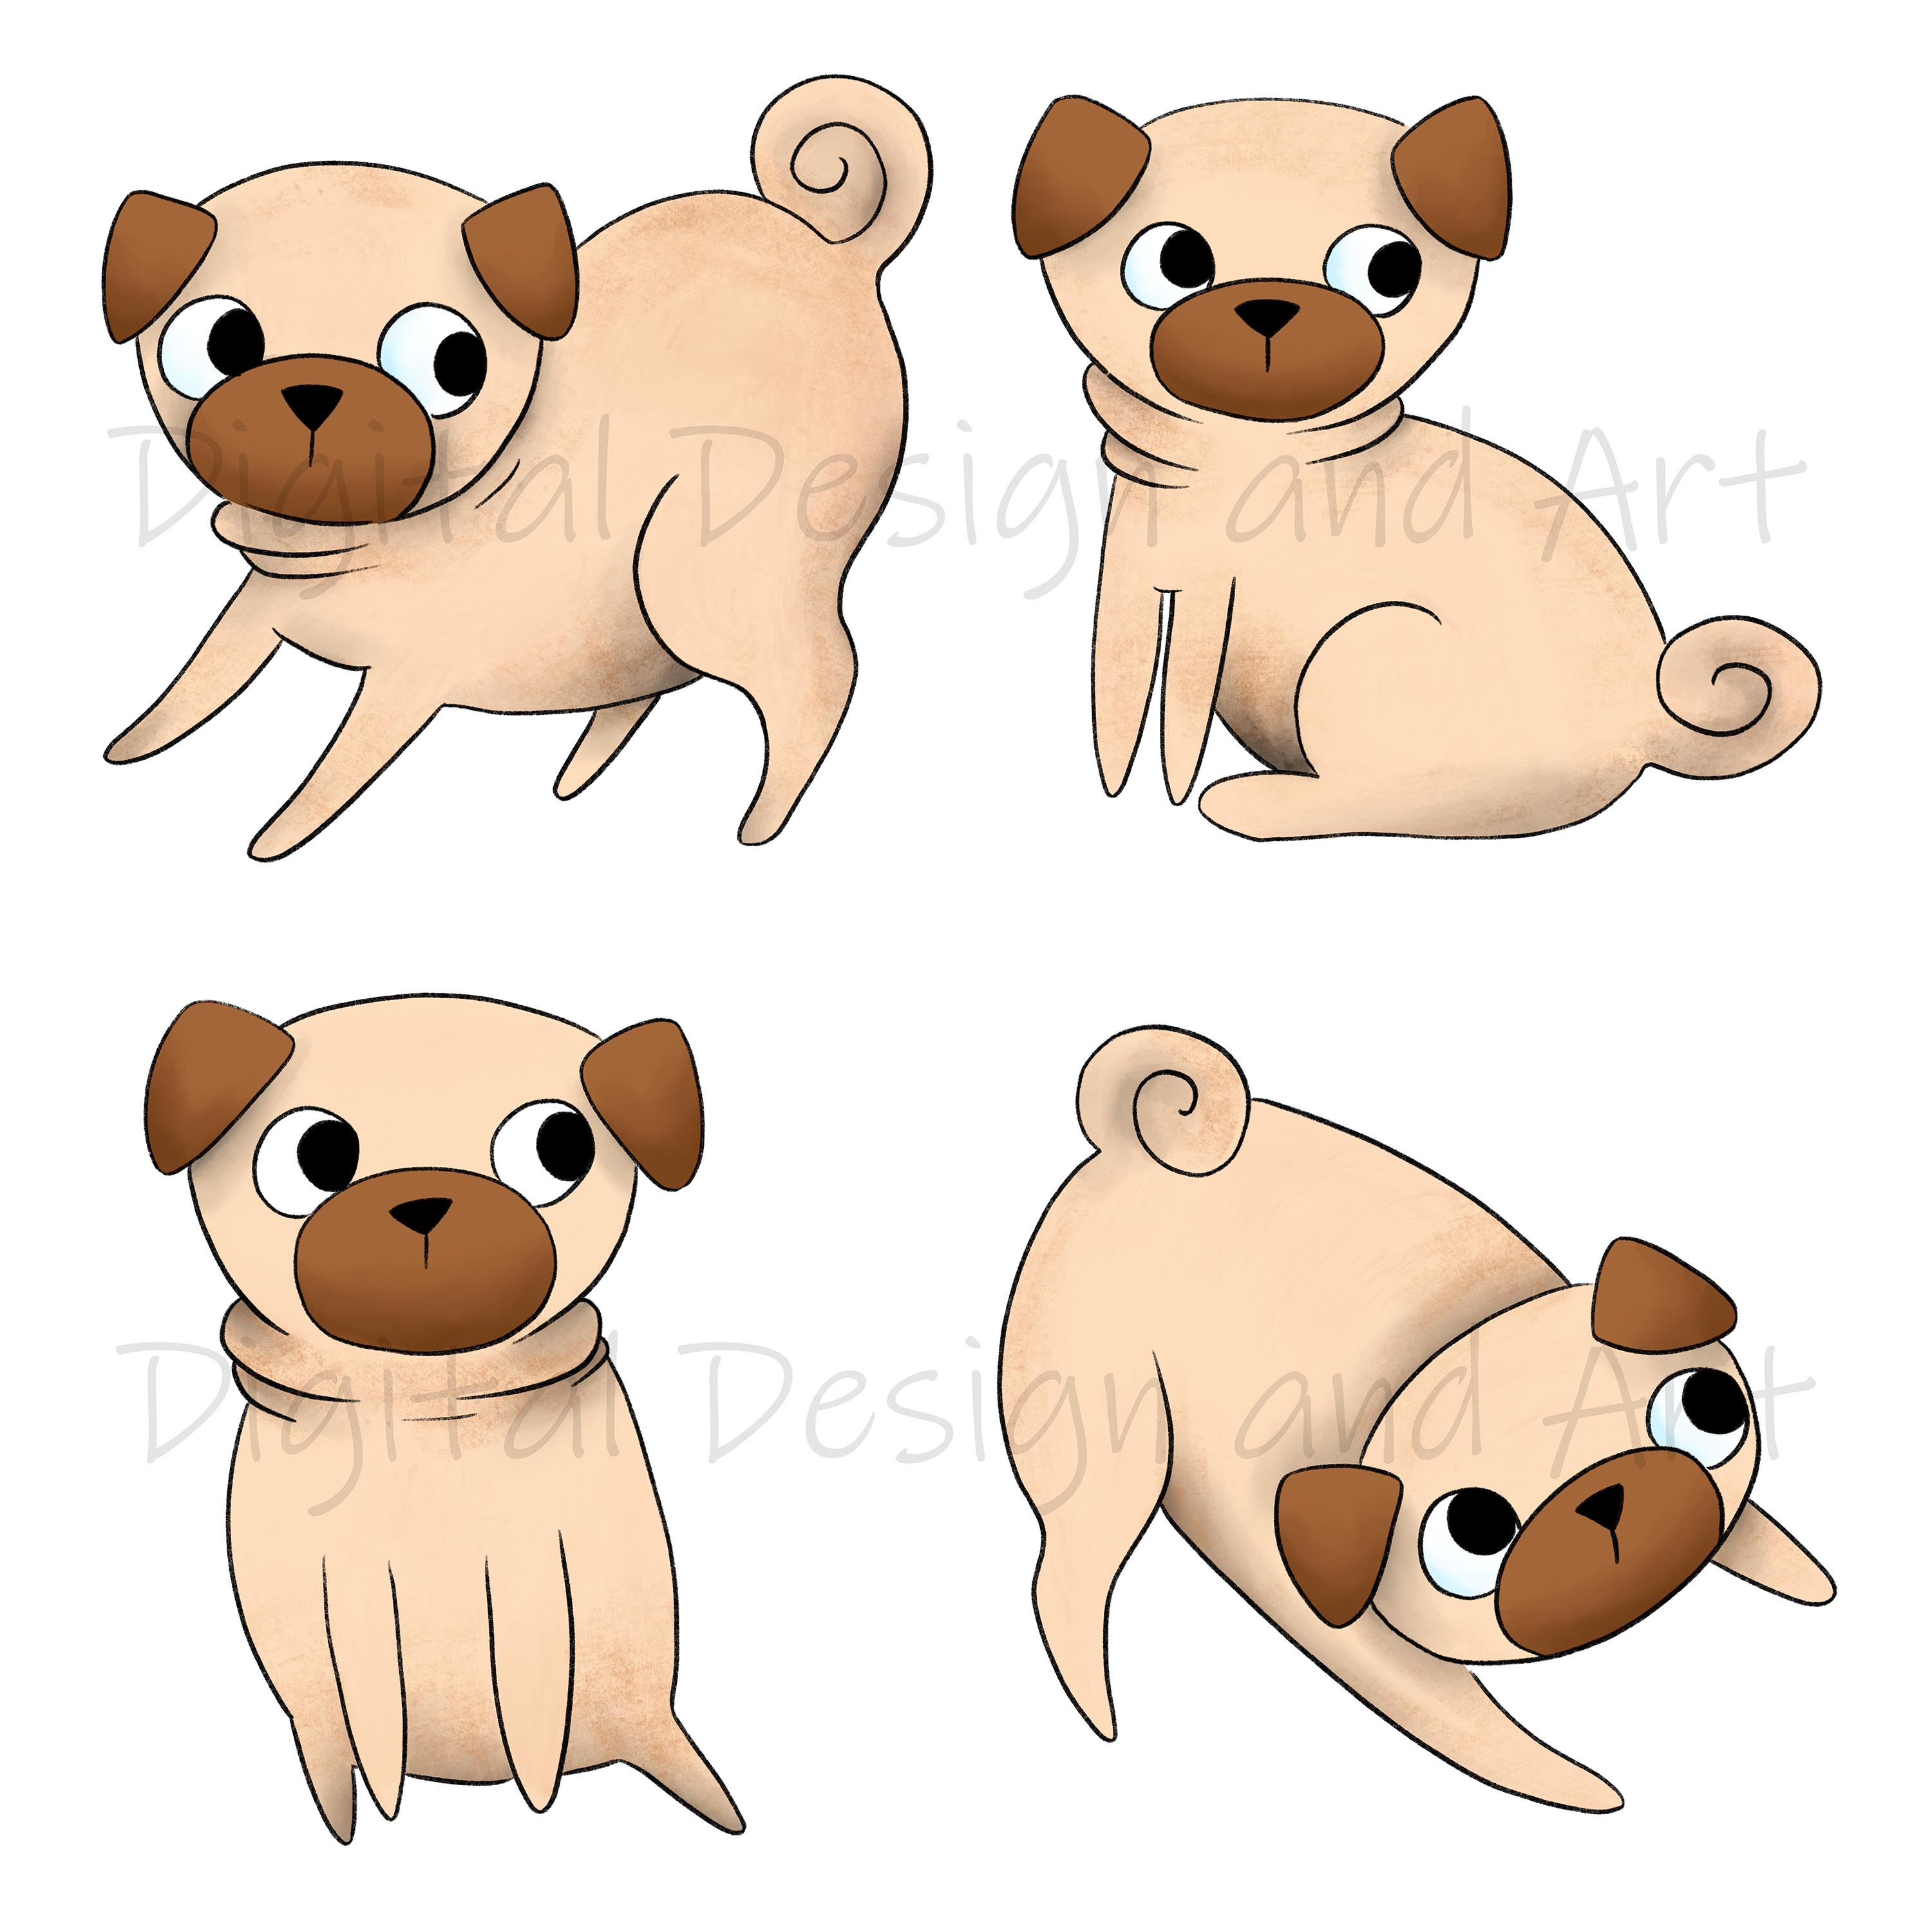 Pug clipart example image 2